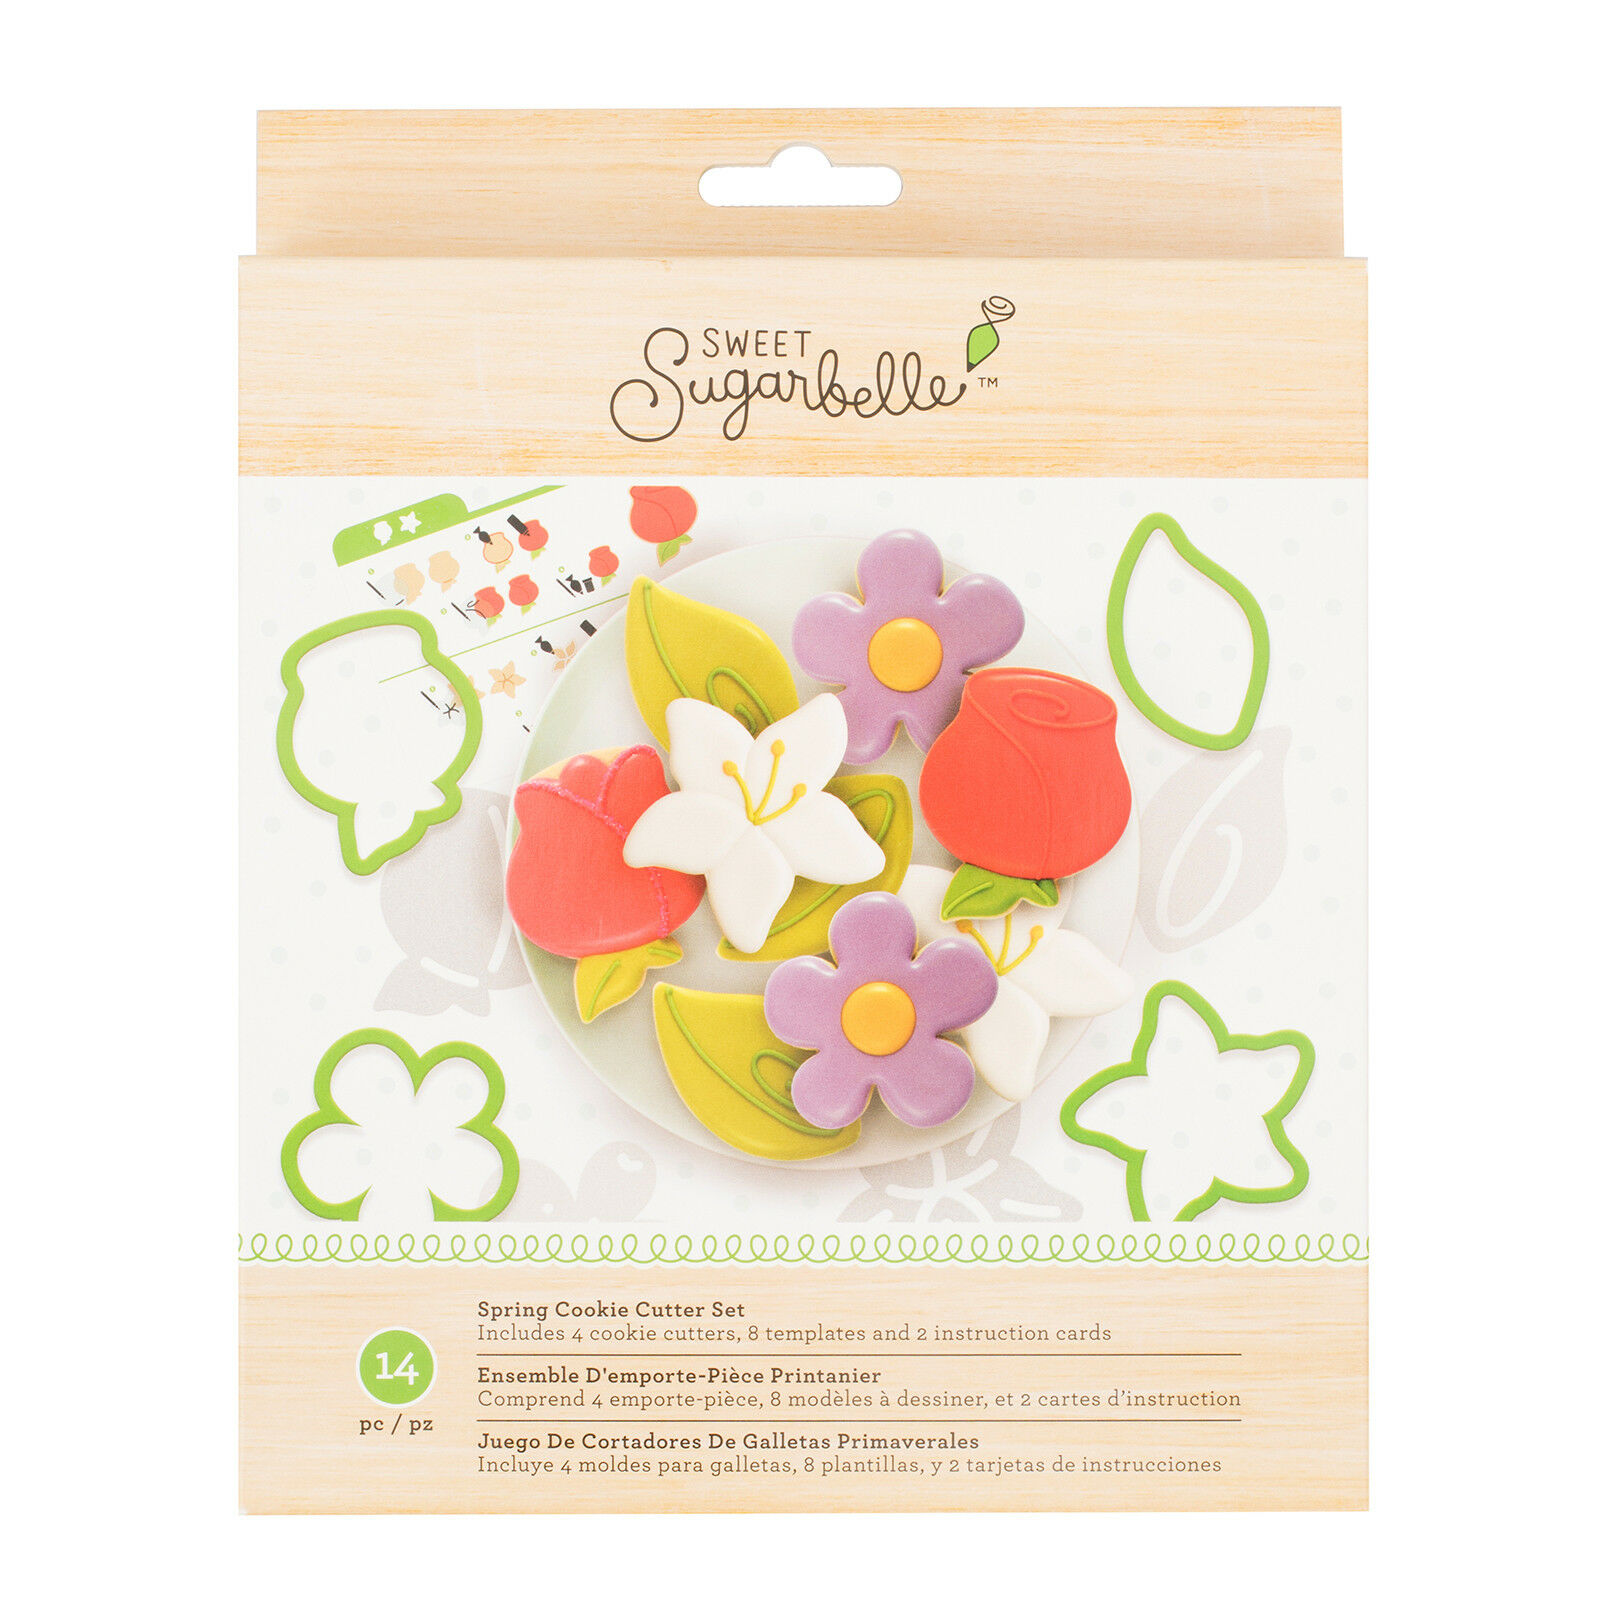 American Crafts Sweet Sugarbelle Summer Cookie Cutters Template Set 14 Pieces